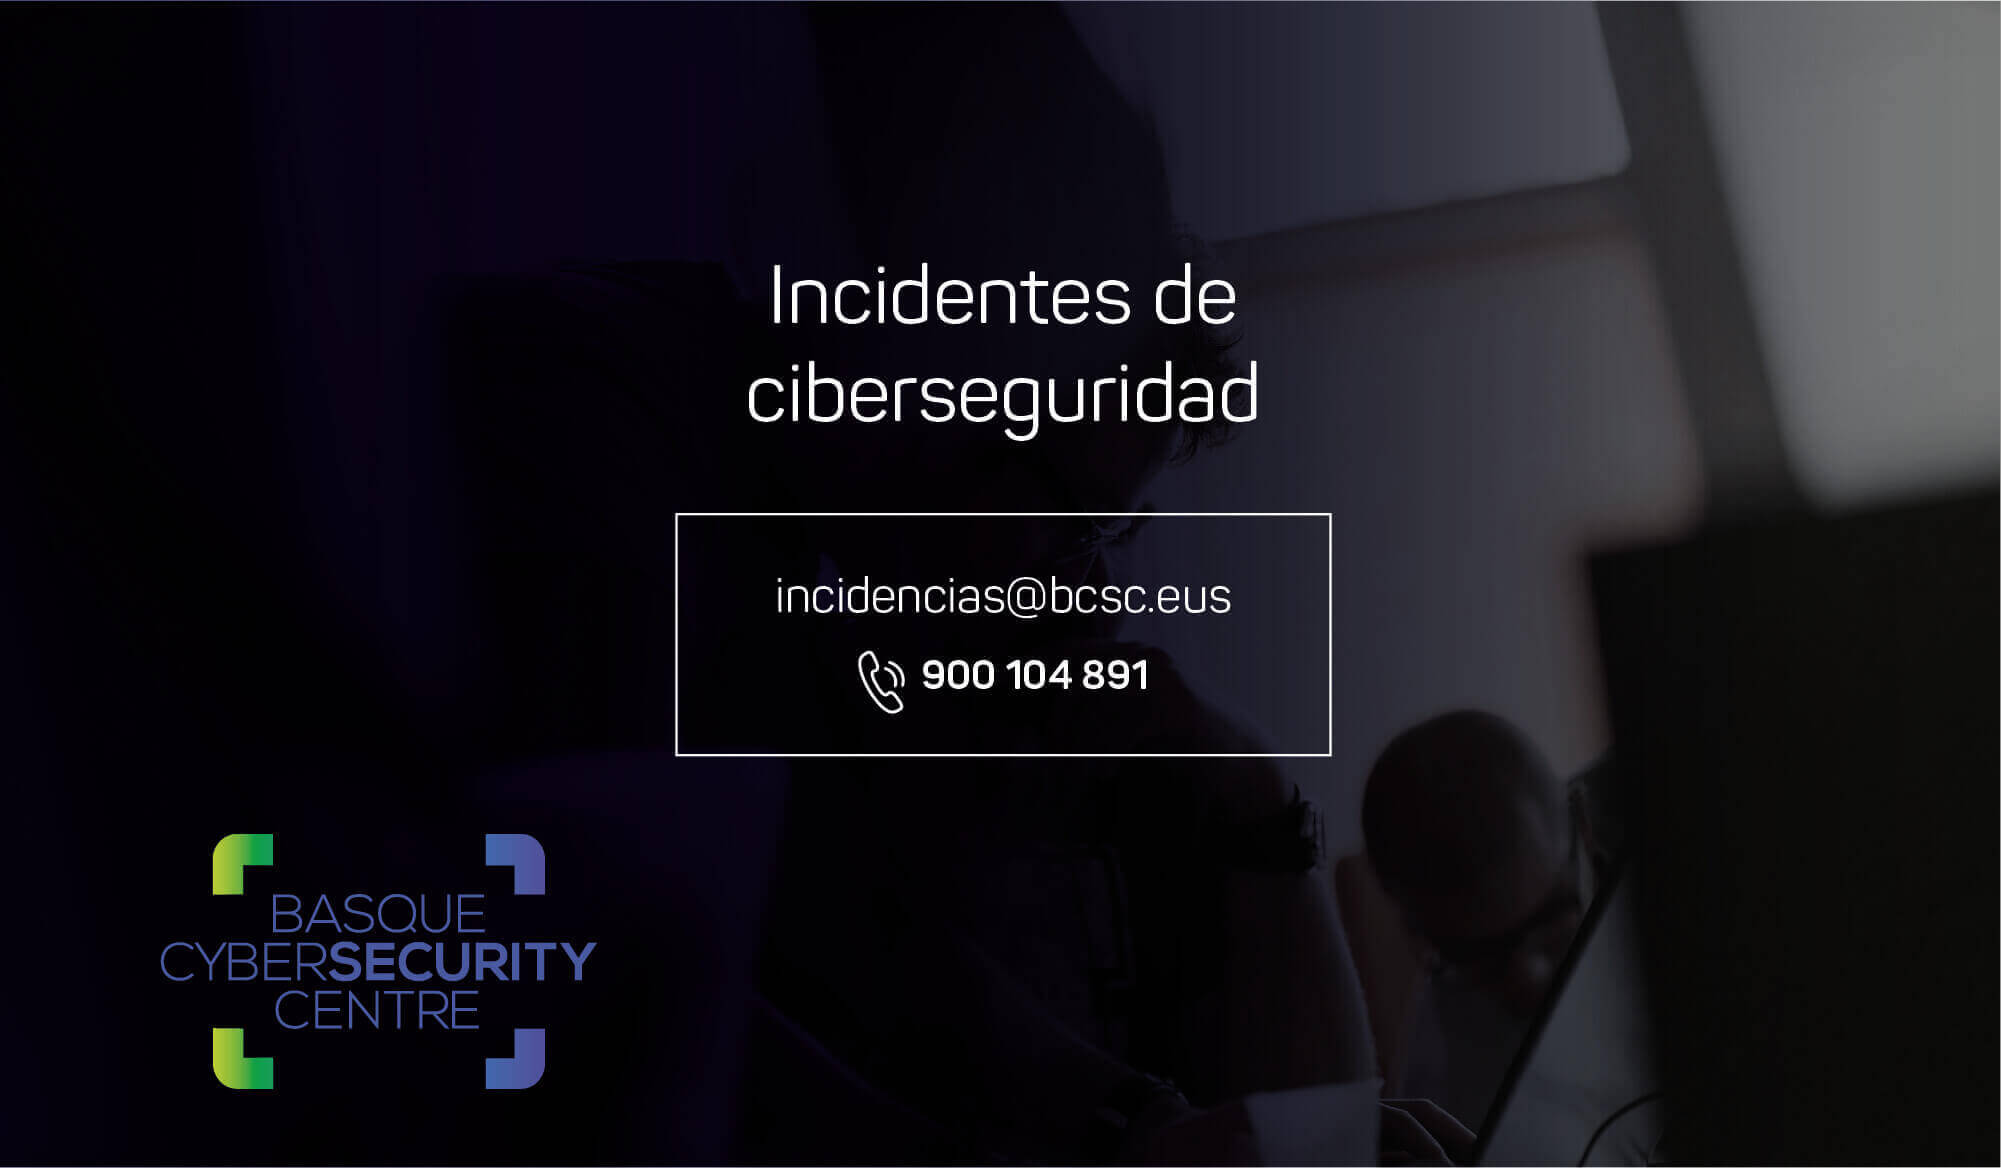 Support and advice hotline in case of cyber security incidents